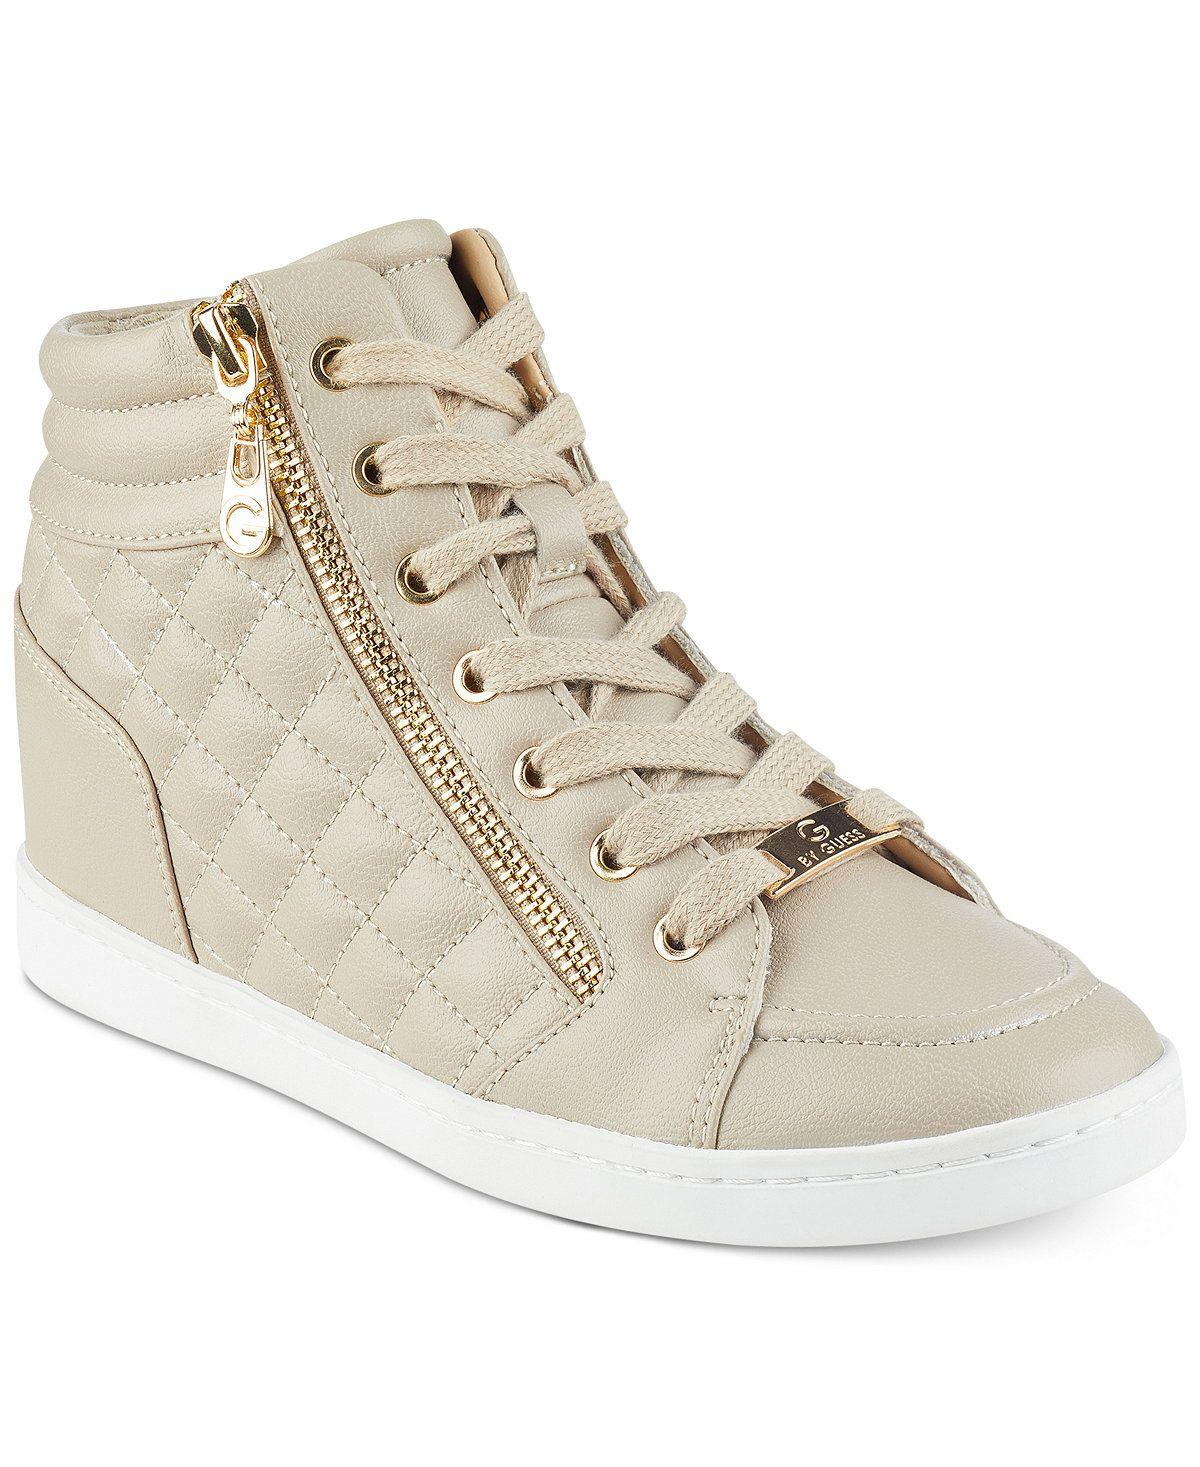 31c20543 G by GUESS Daryl High-Top Sneakers - Sneakers - Shoes - Macy's ...